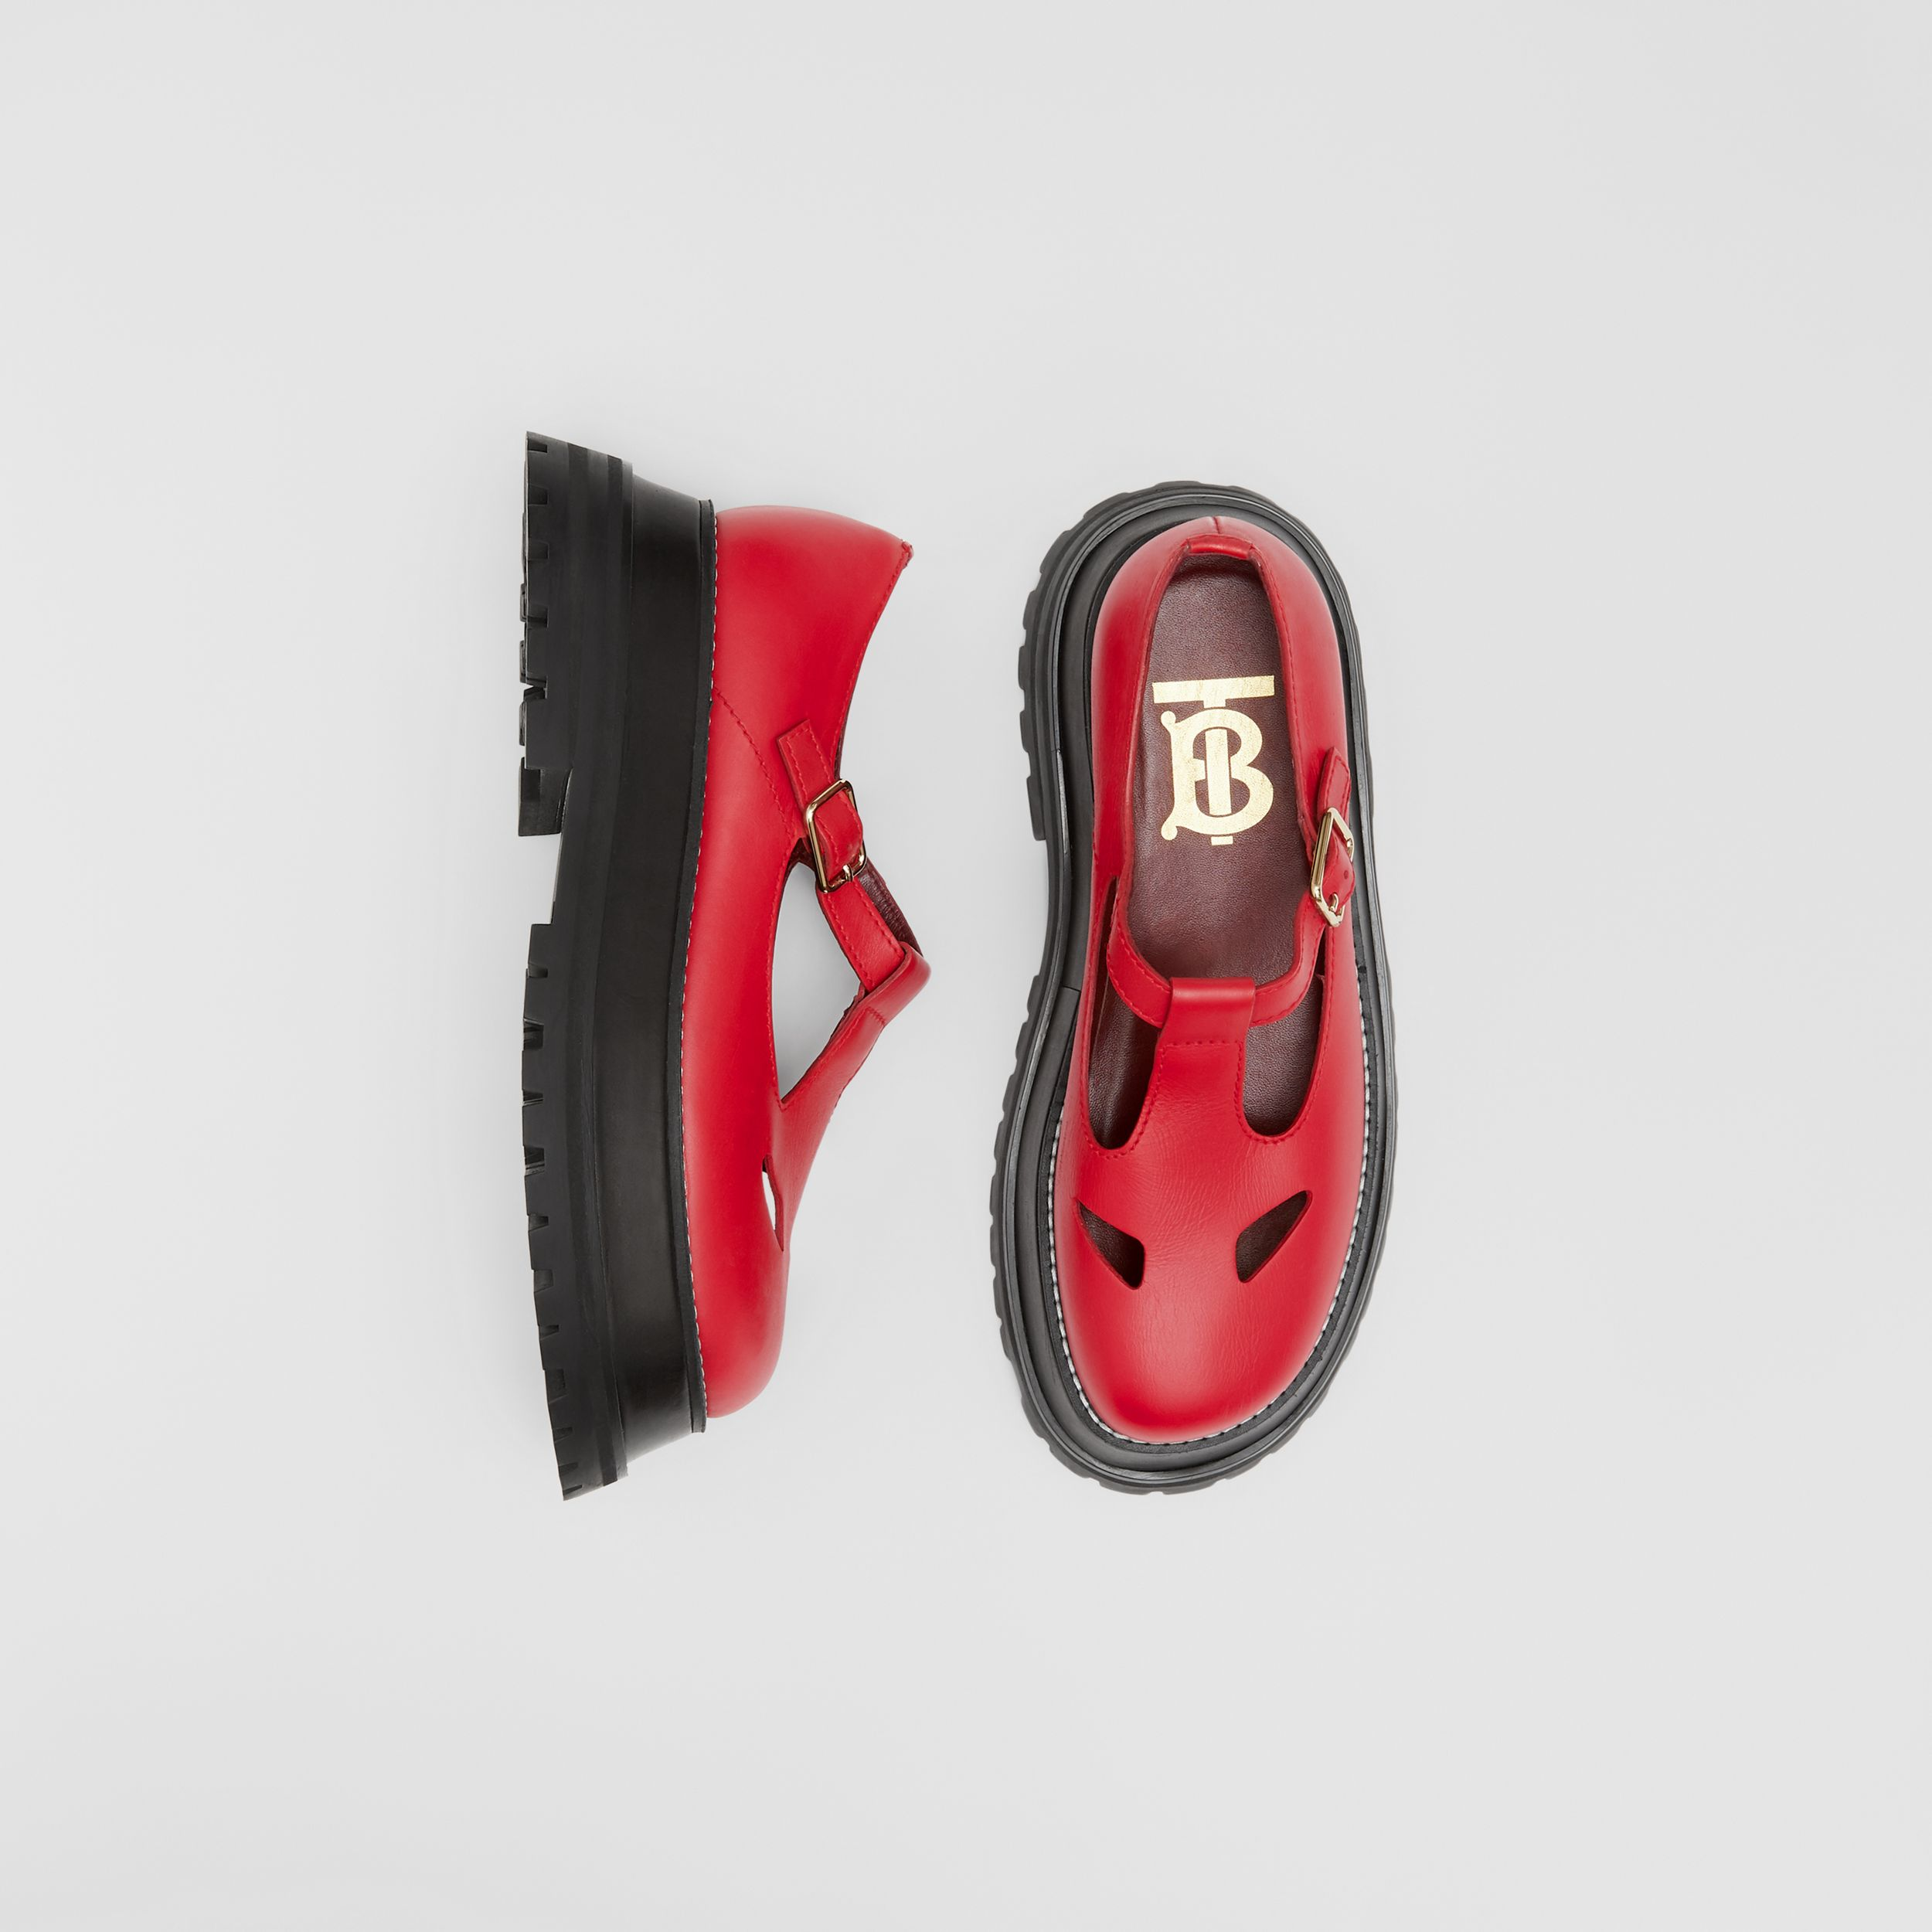 Leather T-bar Shoes in Red - Women | Burberry - 1